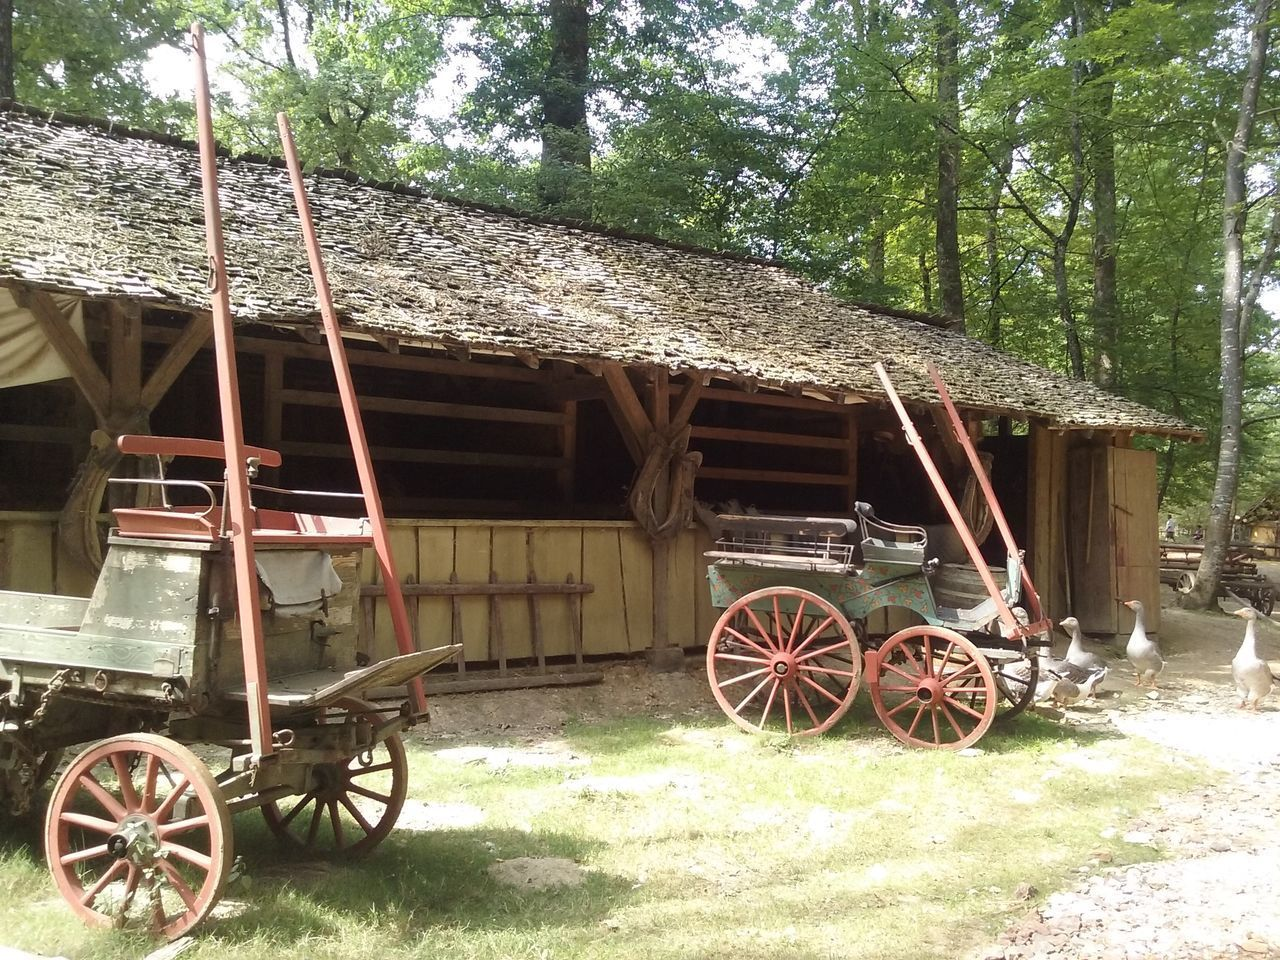 wagon wheel, transportation, wheel, horse cart, horsedrawn, mode of transport, day, tree, outdoors, built structure, no people